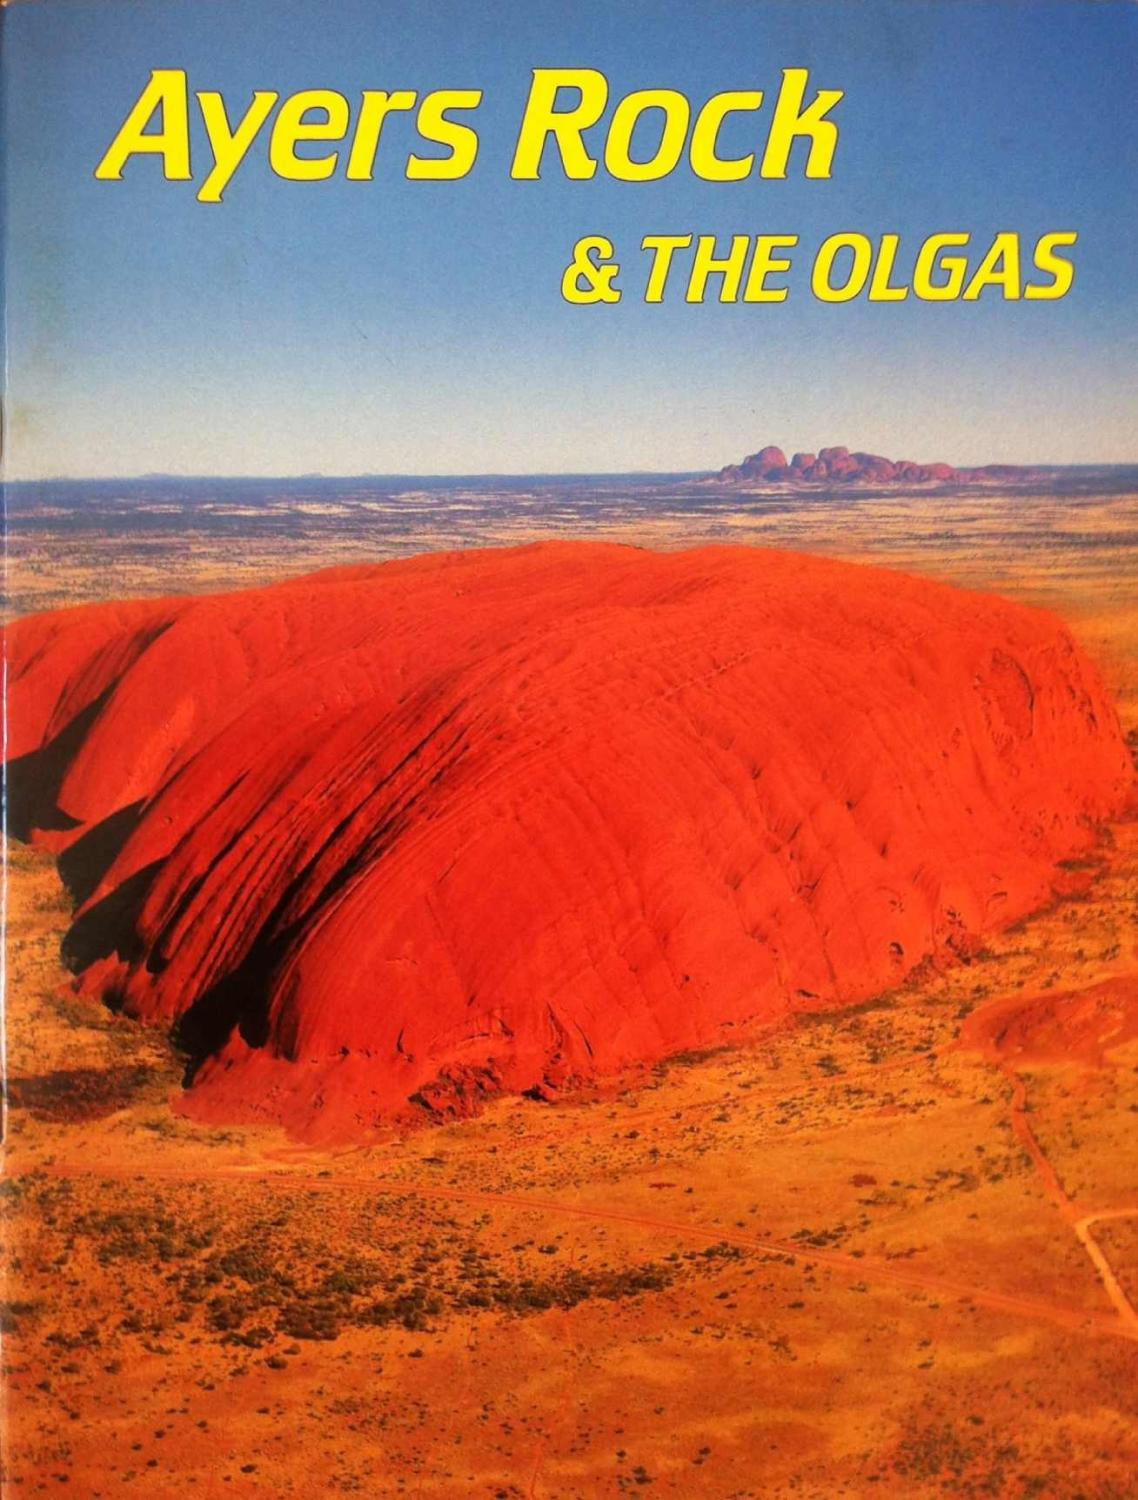 Ayers Rock & The Olgas